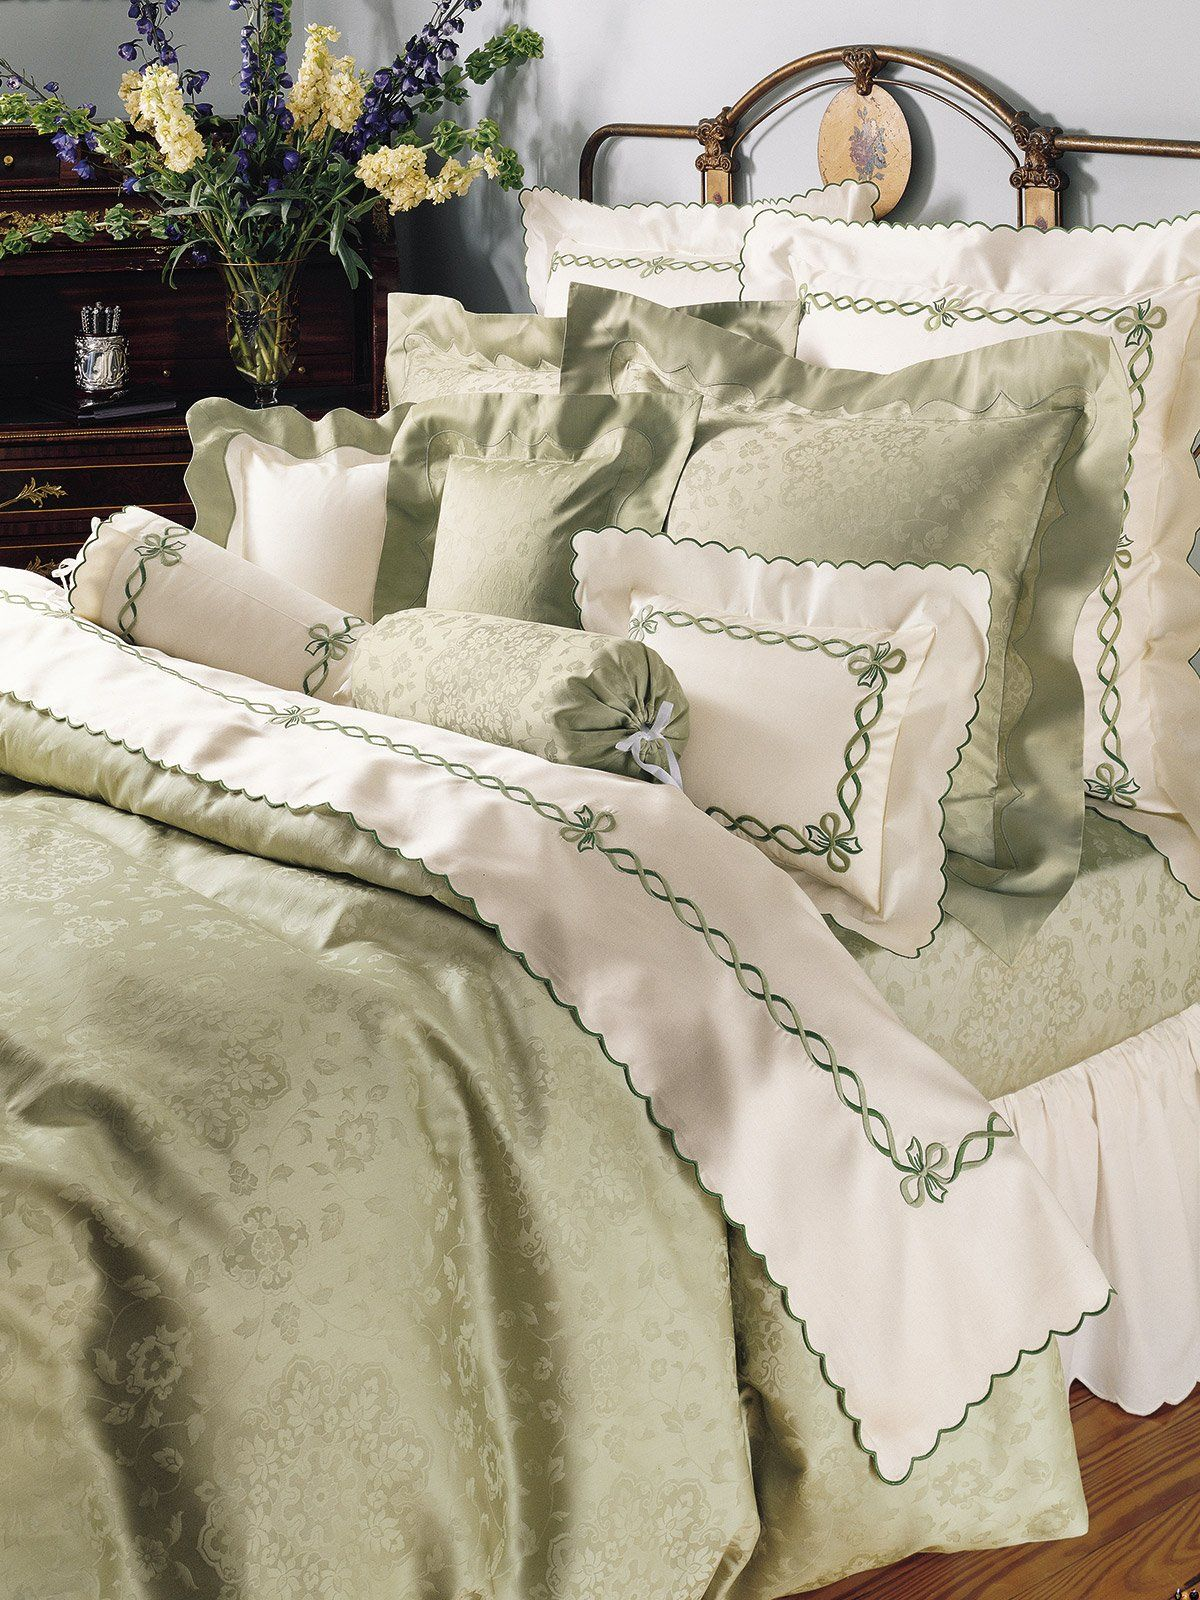 Luxe Bedspreien Pin By Jane Hanna On Beds Bedrooms Snuggle Up